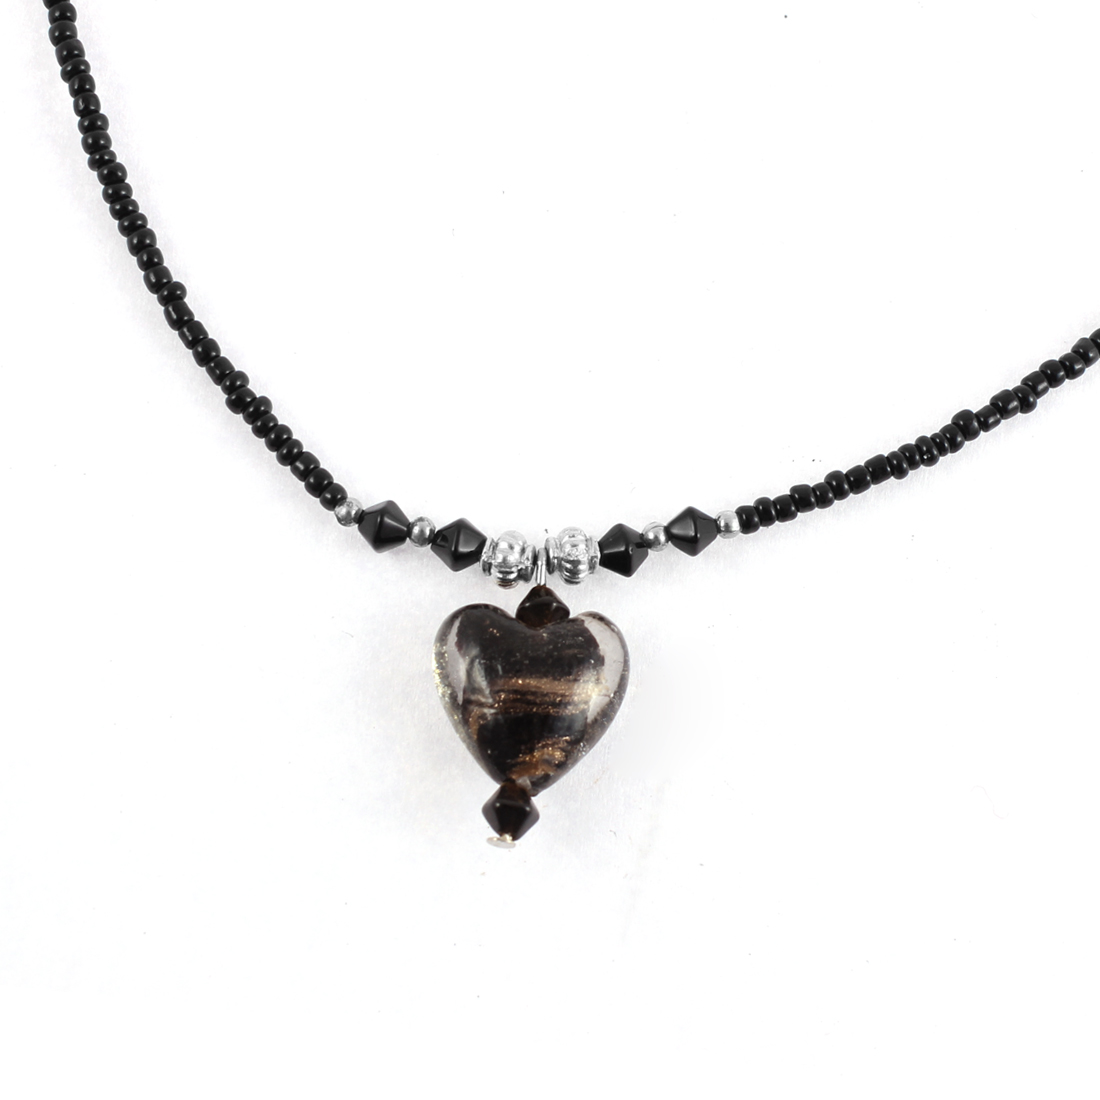 Women Heart Shaped Bead Pendant Beaded Chain Necklace Black